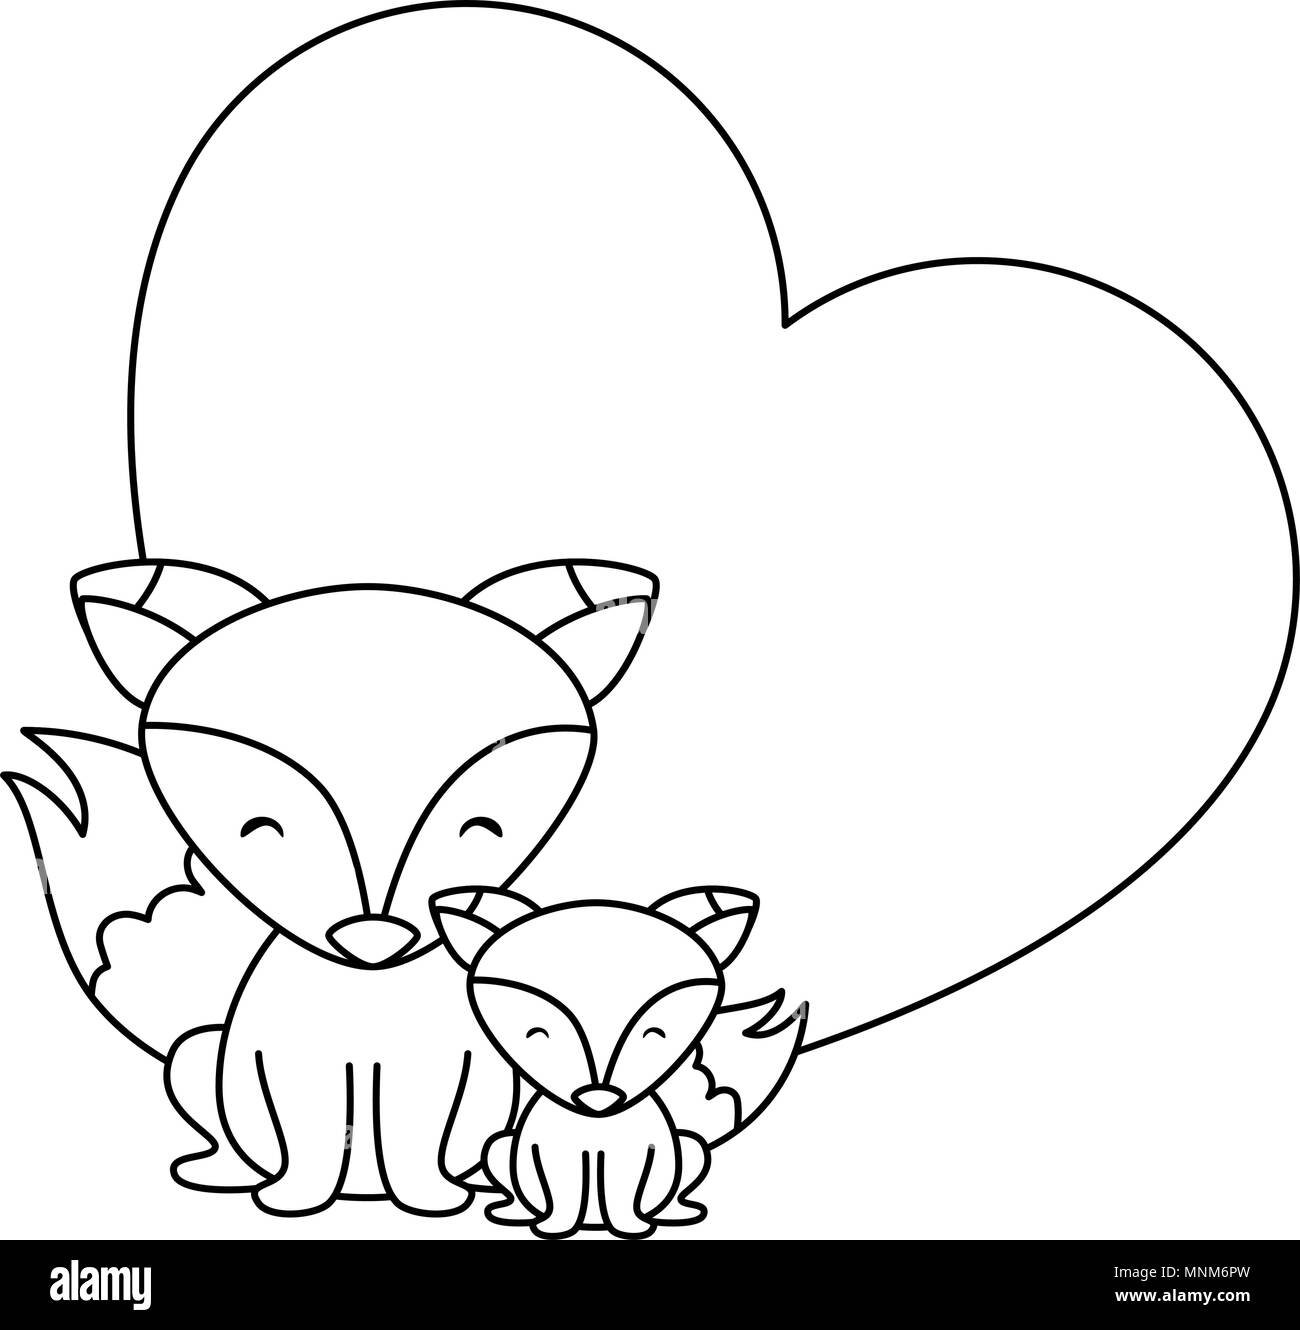 cute father and son foxes in heart characters - Stock Image